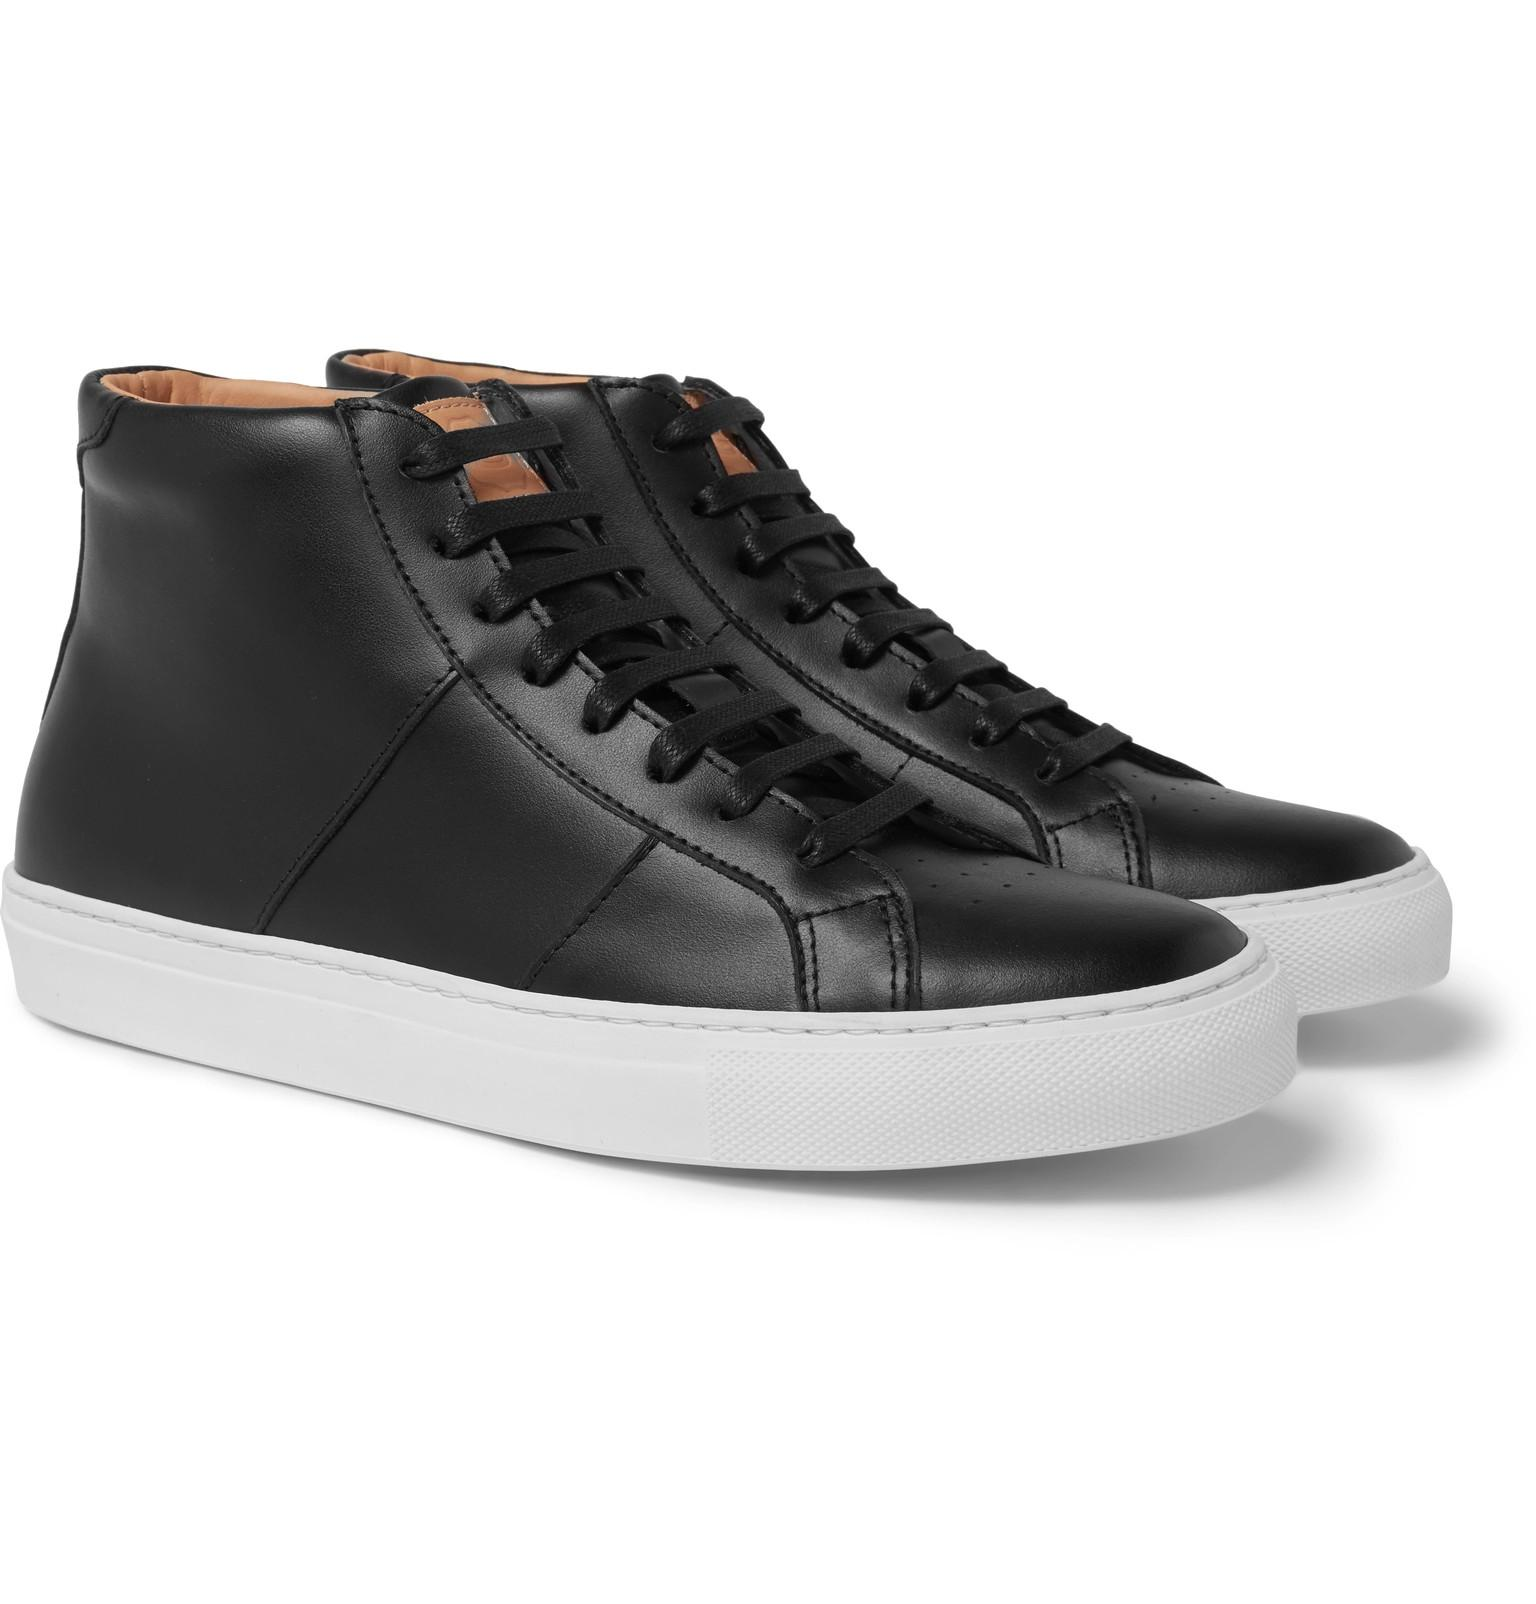 GREATS Leather Royale High Top Sneaker